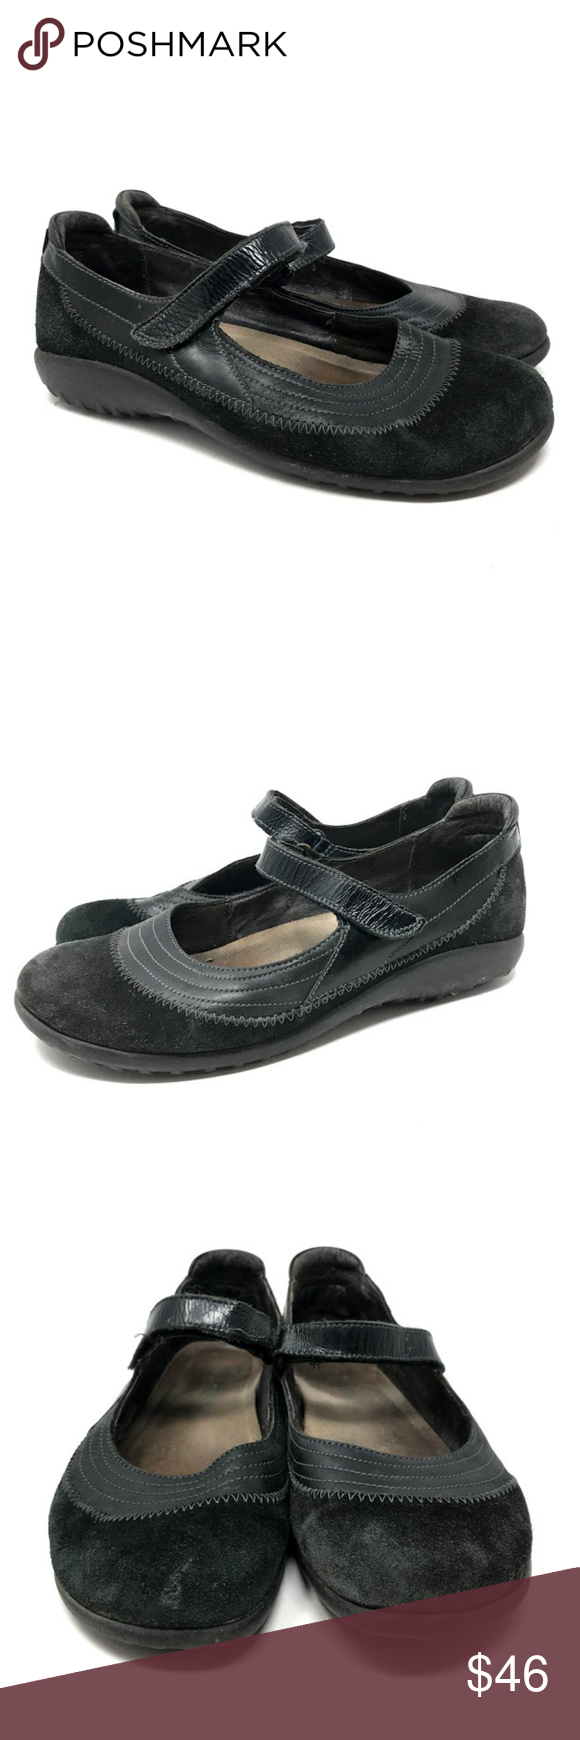 Naot Kerei Mary Jane Shoes 38 / 7.5-8 US Naot Kerei Suede Leather Mary Jane Shoes 38 / US 7.5-8   The Kirei is a vibrant, fashionable Mary Jane shoe. This style has a padded heel cup for stability & comfort and a hook & loop closure at the instep for adjustability. The front portion of the Kirei features padded technical lining which provides comfort and absorbs moisture. This collection uses a hand-sewn stroble construction making it strong and extremely flexible.  090618-MS Naot Shoes